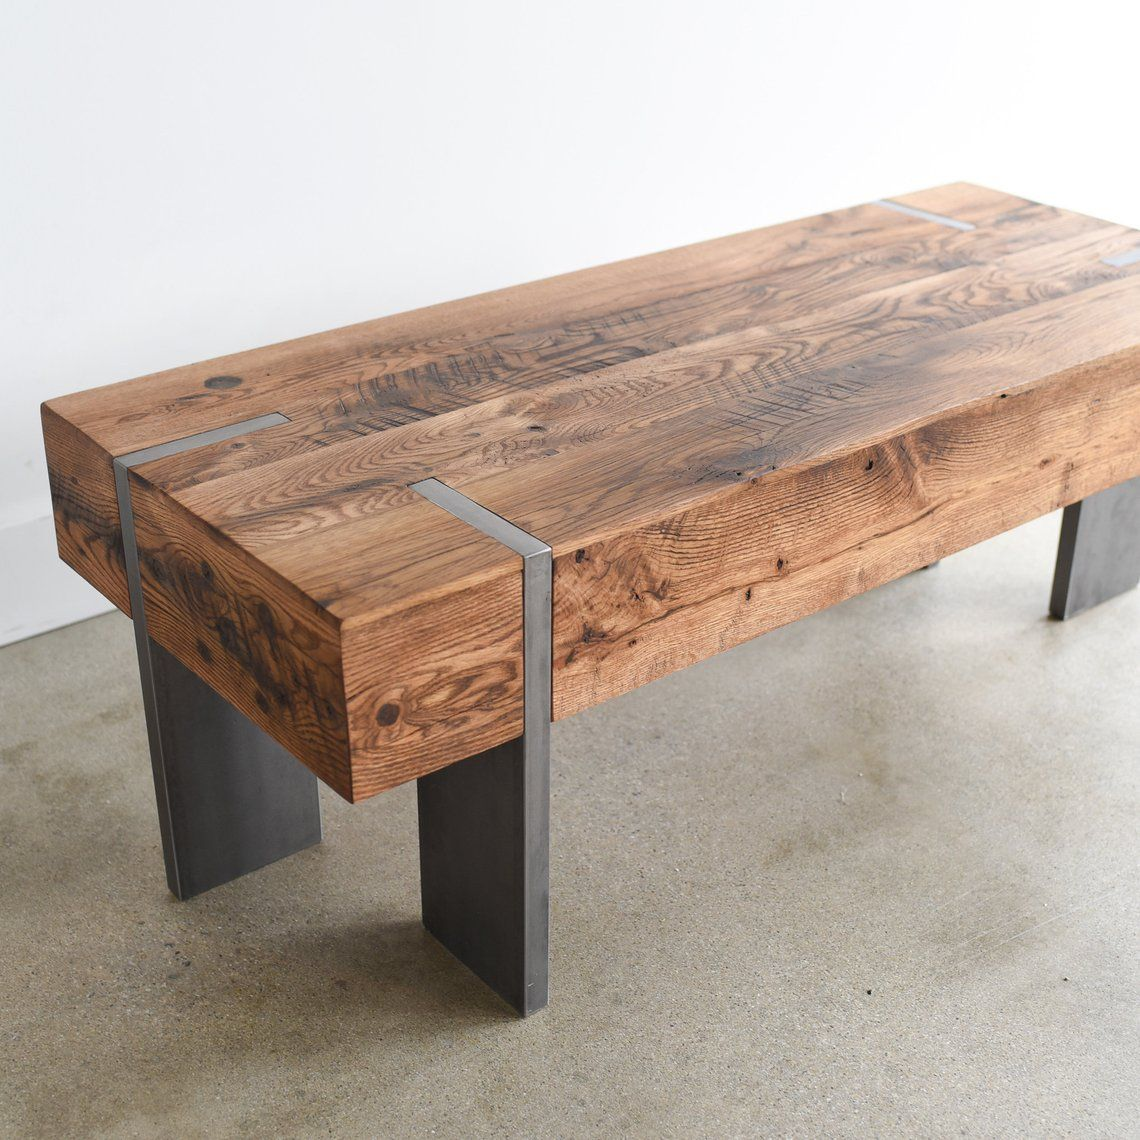 Modern Coffee Table Reclaimed Wood Rectangle Cocktail Table Etsy Reclaimed Wood Coffee Table Coffee Table Wood Coffee Table [ 1140 x 1140 Pixel ]